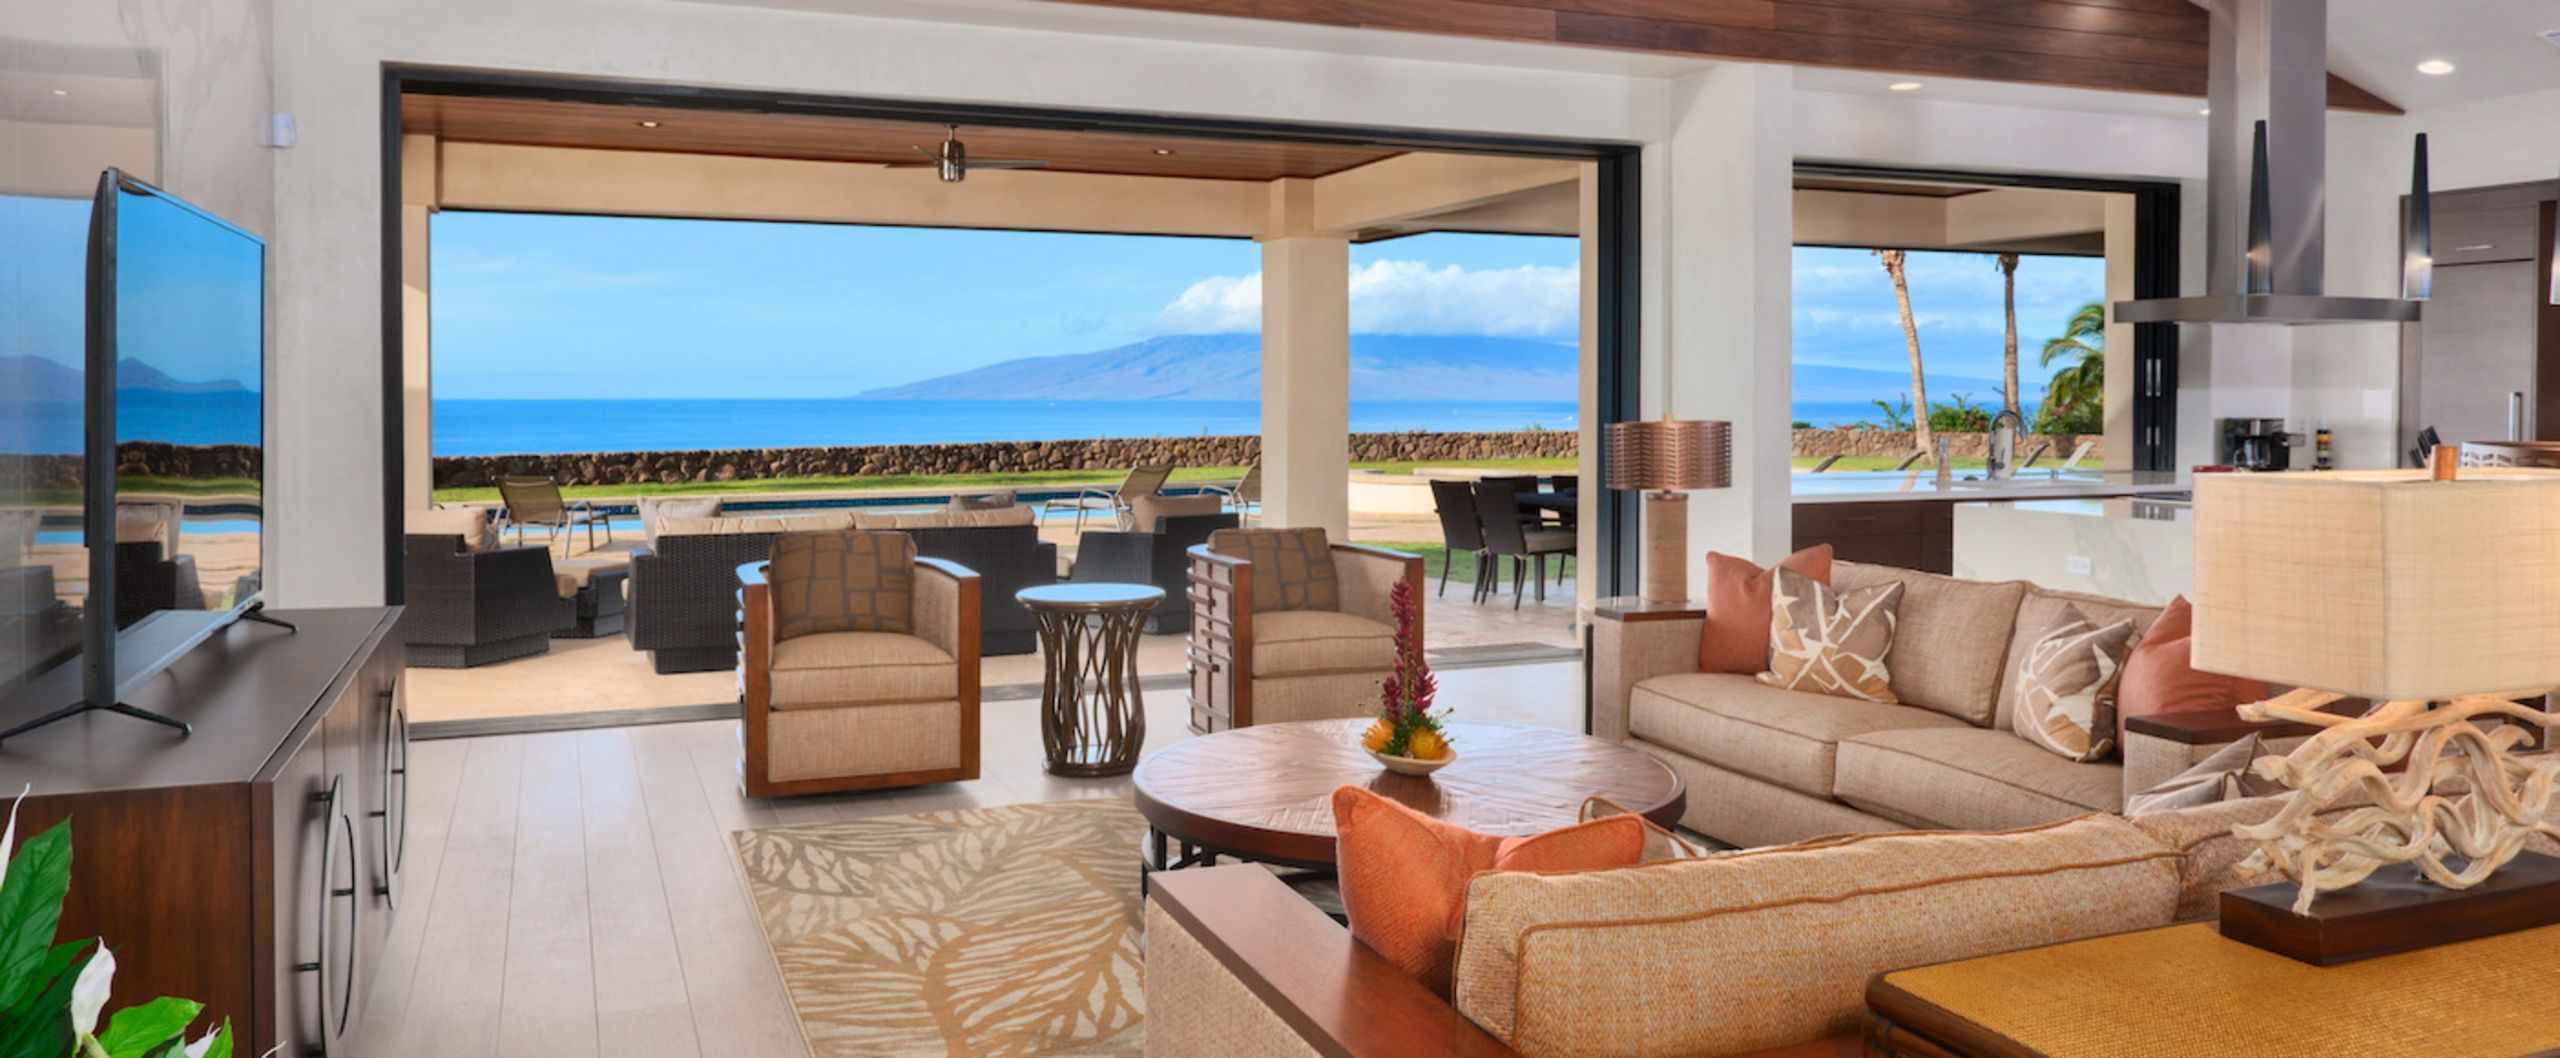 OFFERED AT $5,795,000